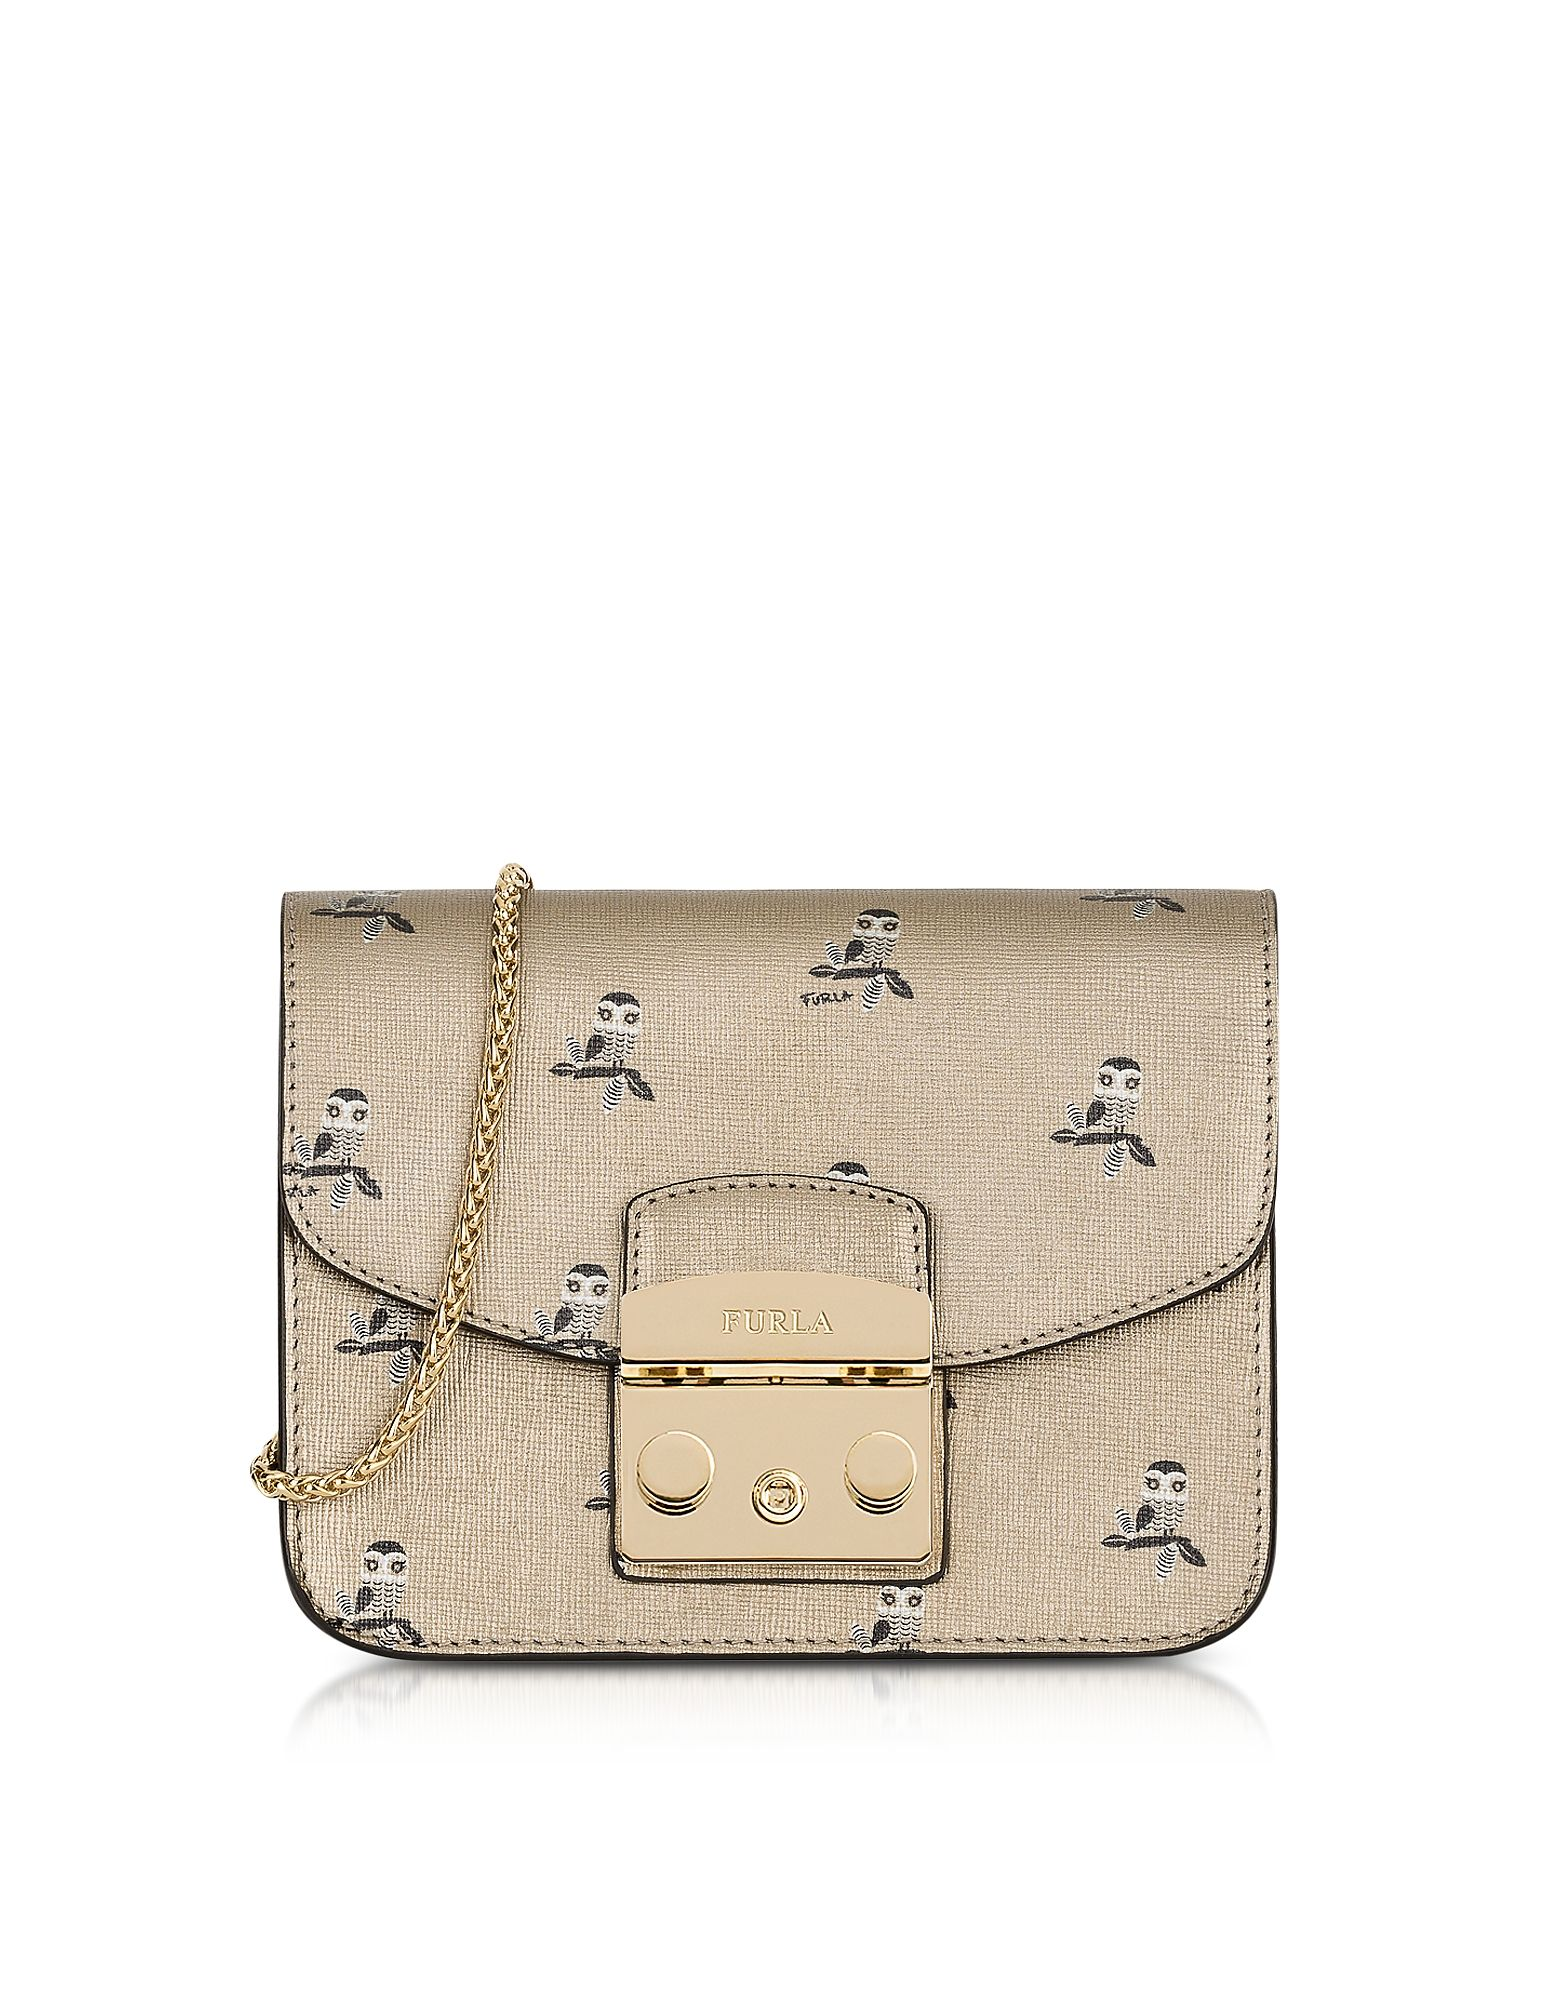 Furla Handbags, Toni Mini Owl Printed Saffiano Leather Metropolis Mini Crossbody Bag